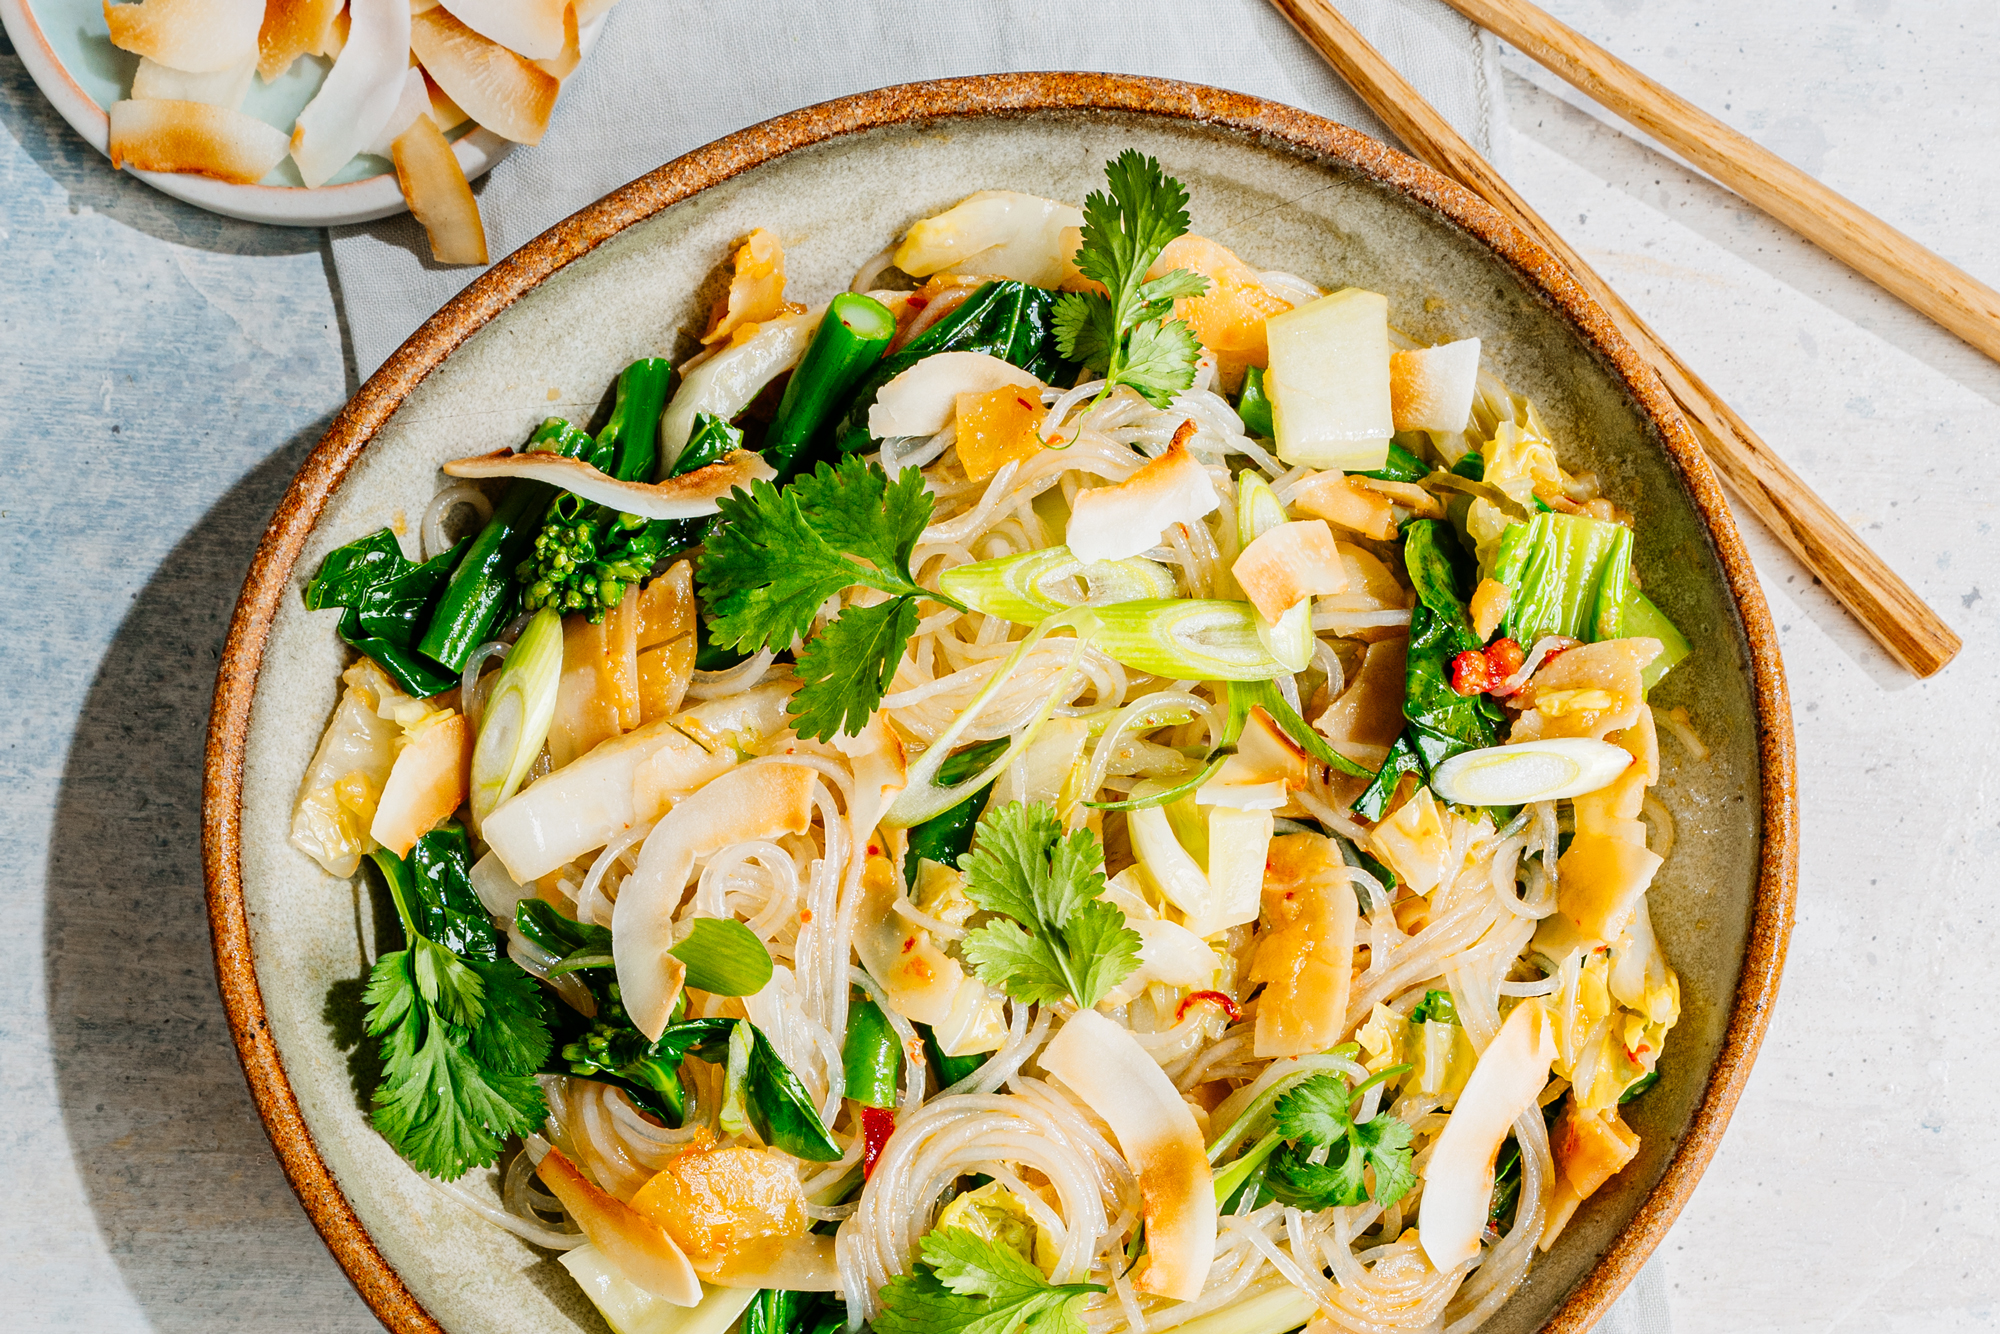 Mung Bean Vermicelli Salad with Spiced Coconut and Greens Recipe